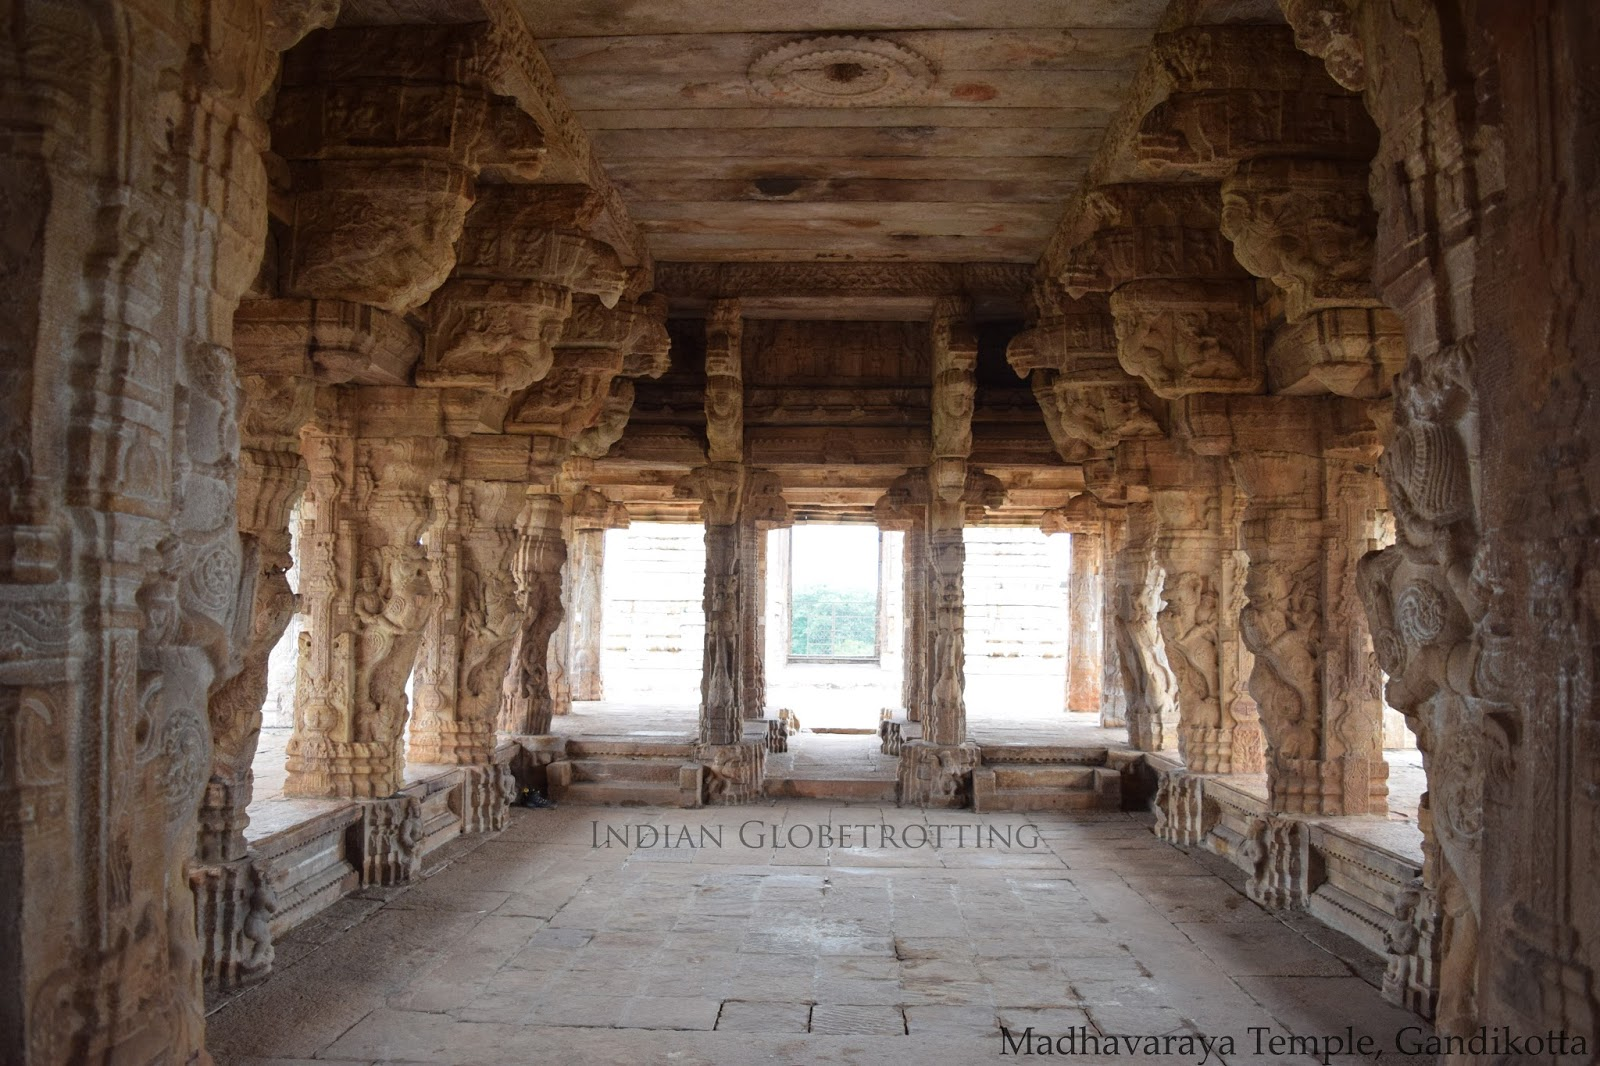 Open hall at Madhavaraya Temple in Gandikotta